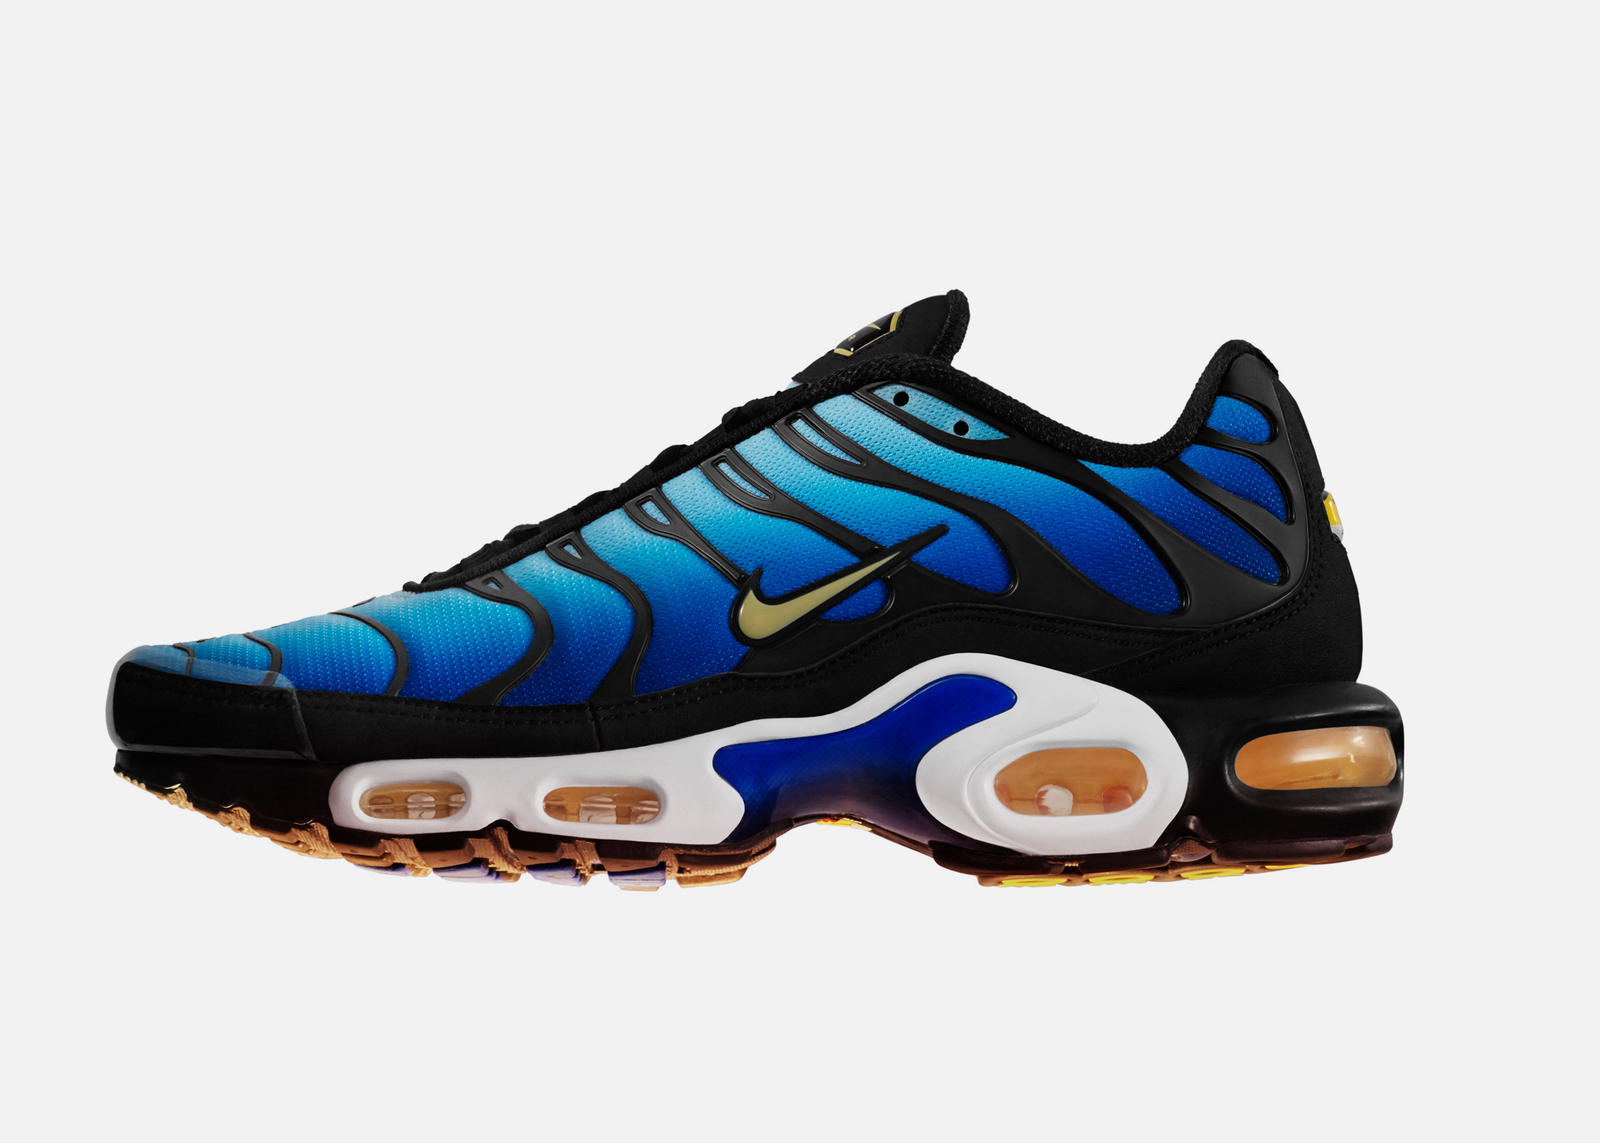 online retailer 3fadc 72442 The Untold Story of the Nike Air Max Plus 20